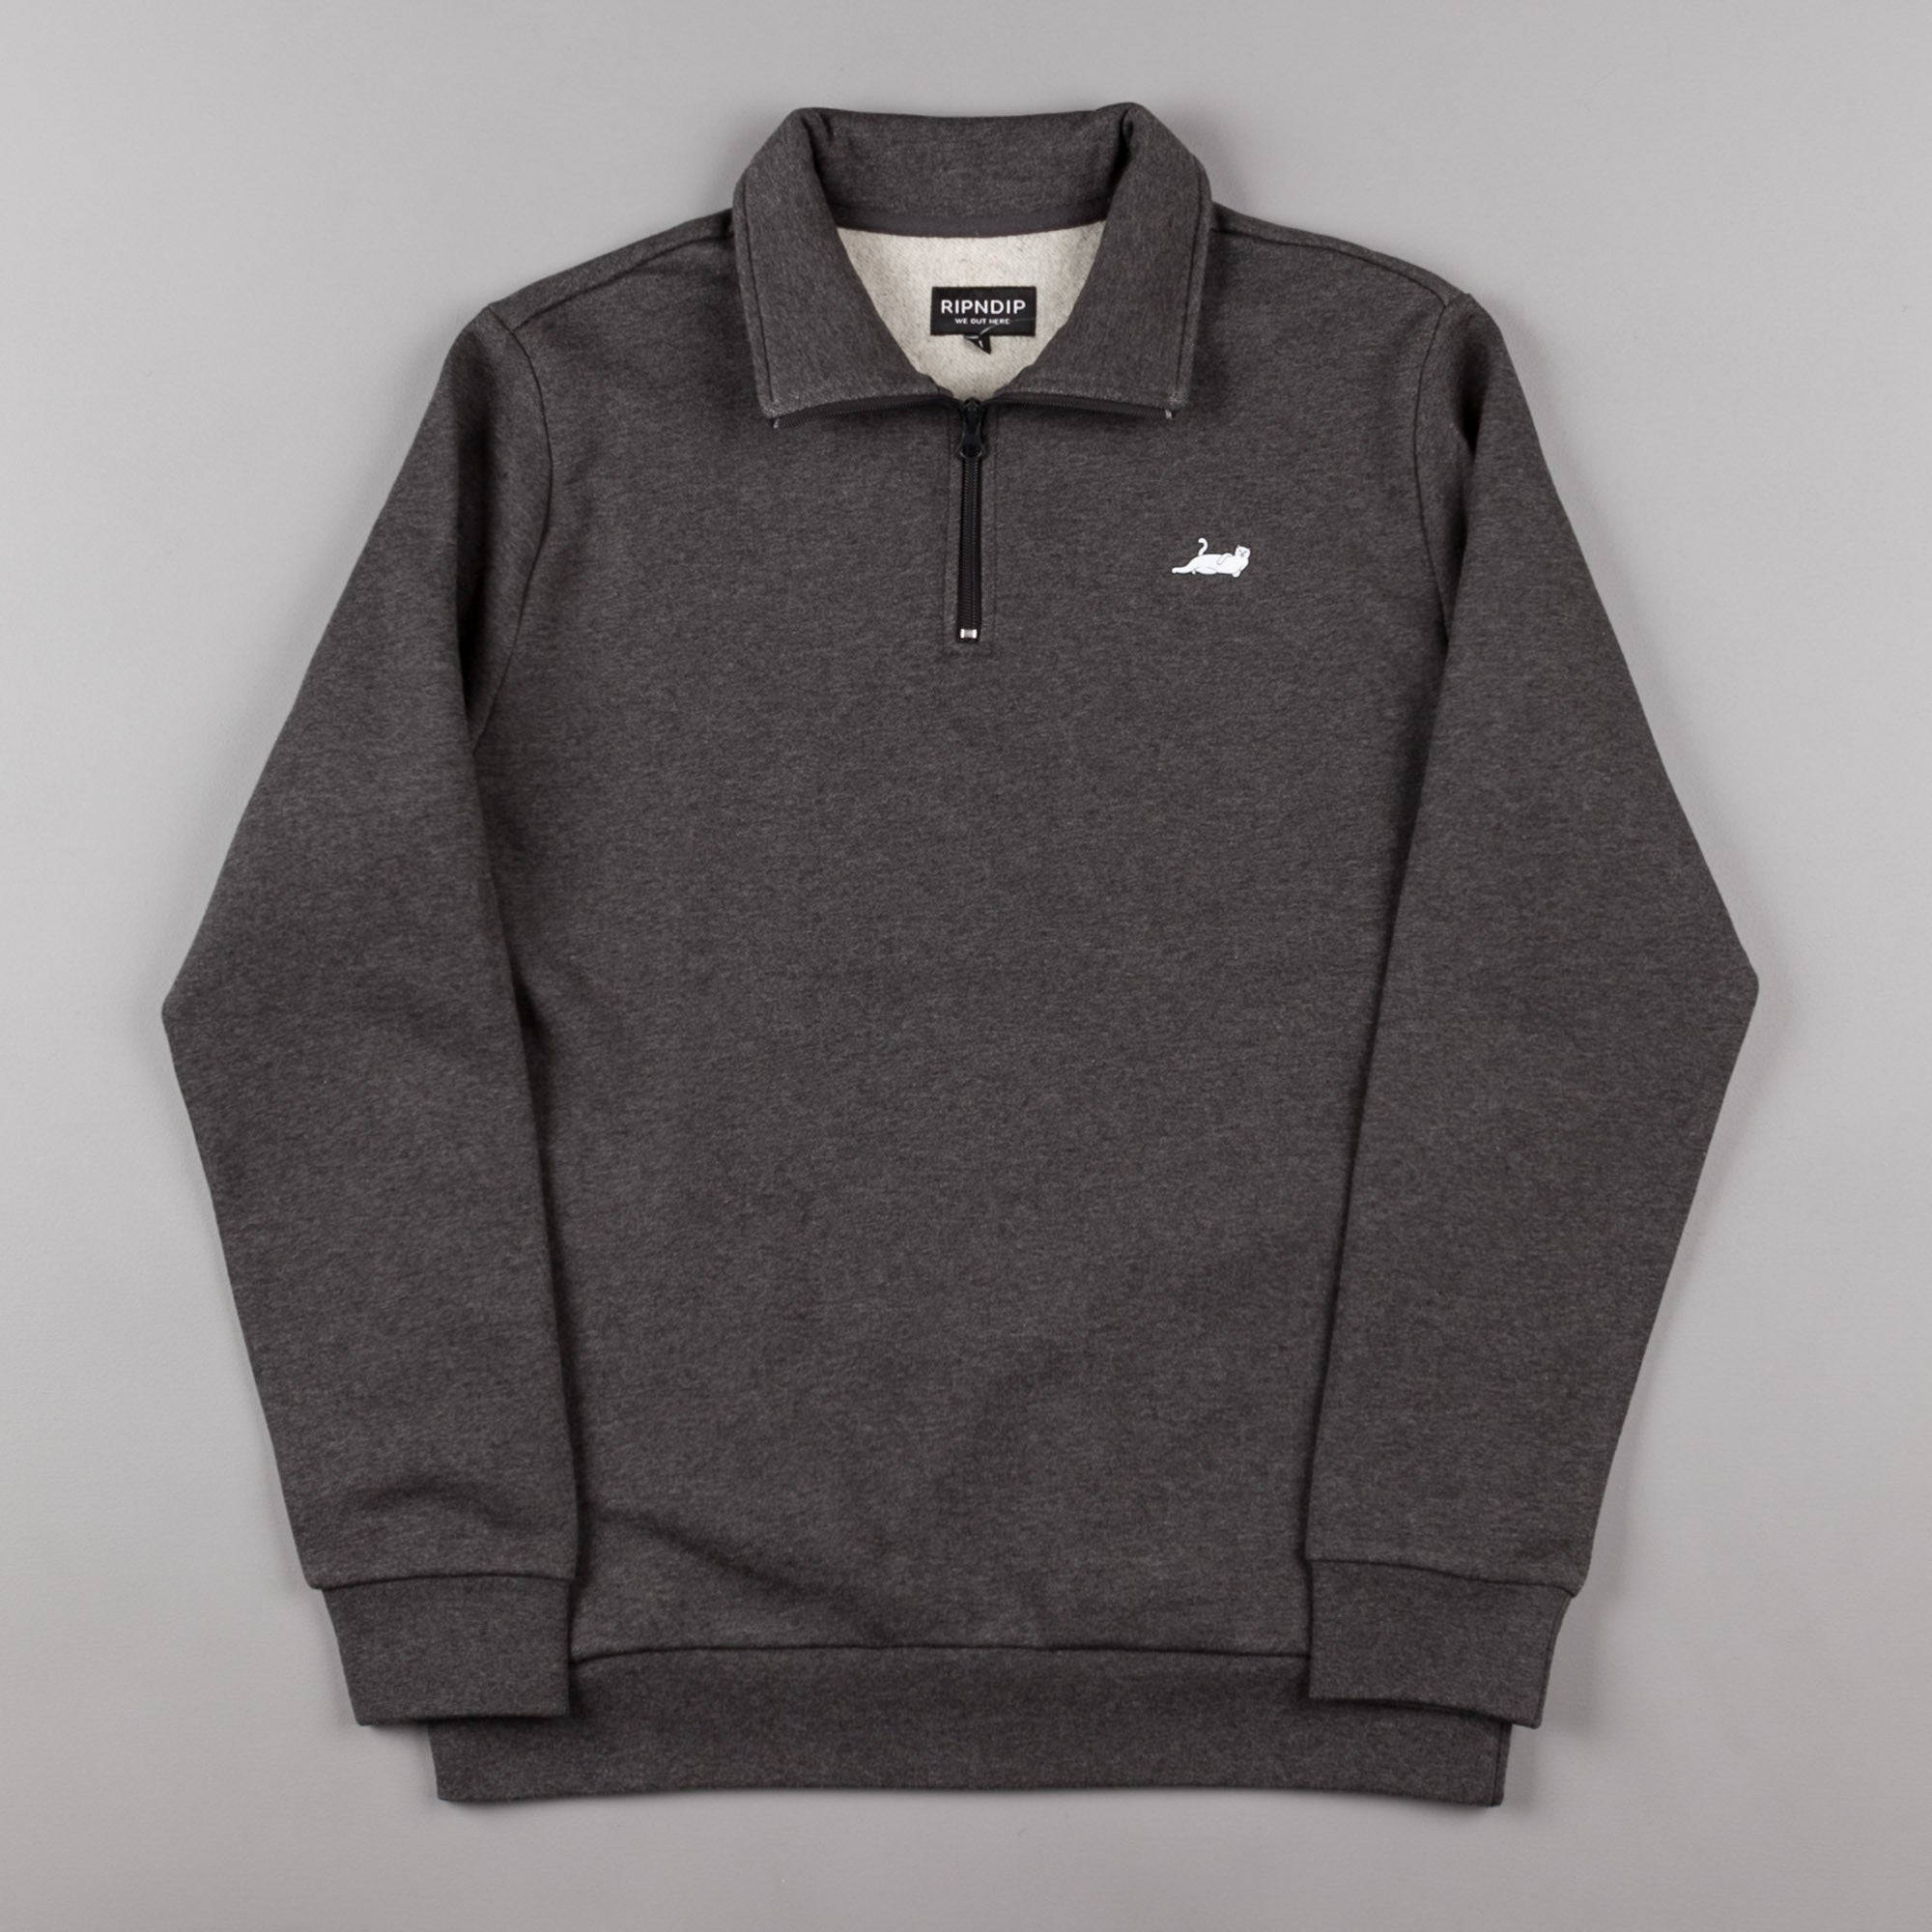 Rip N Dip Castanza Half-Zip Sweatshirt - Heather Grey